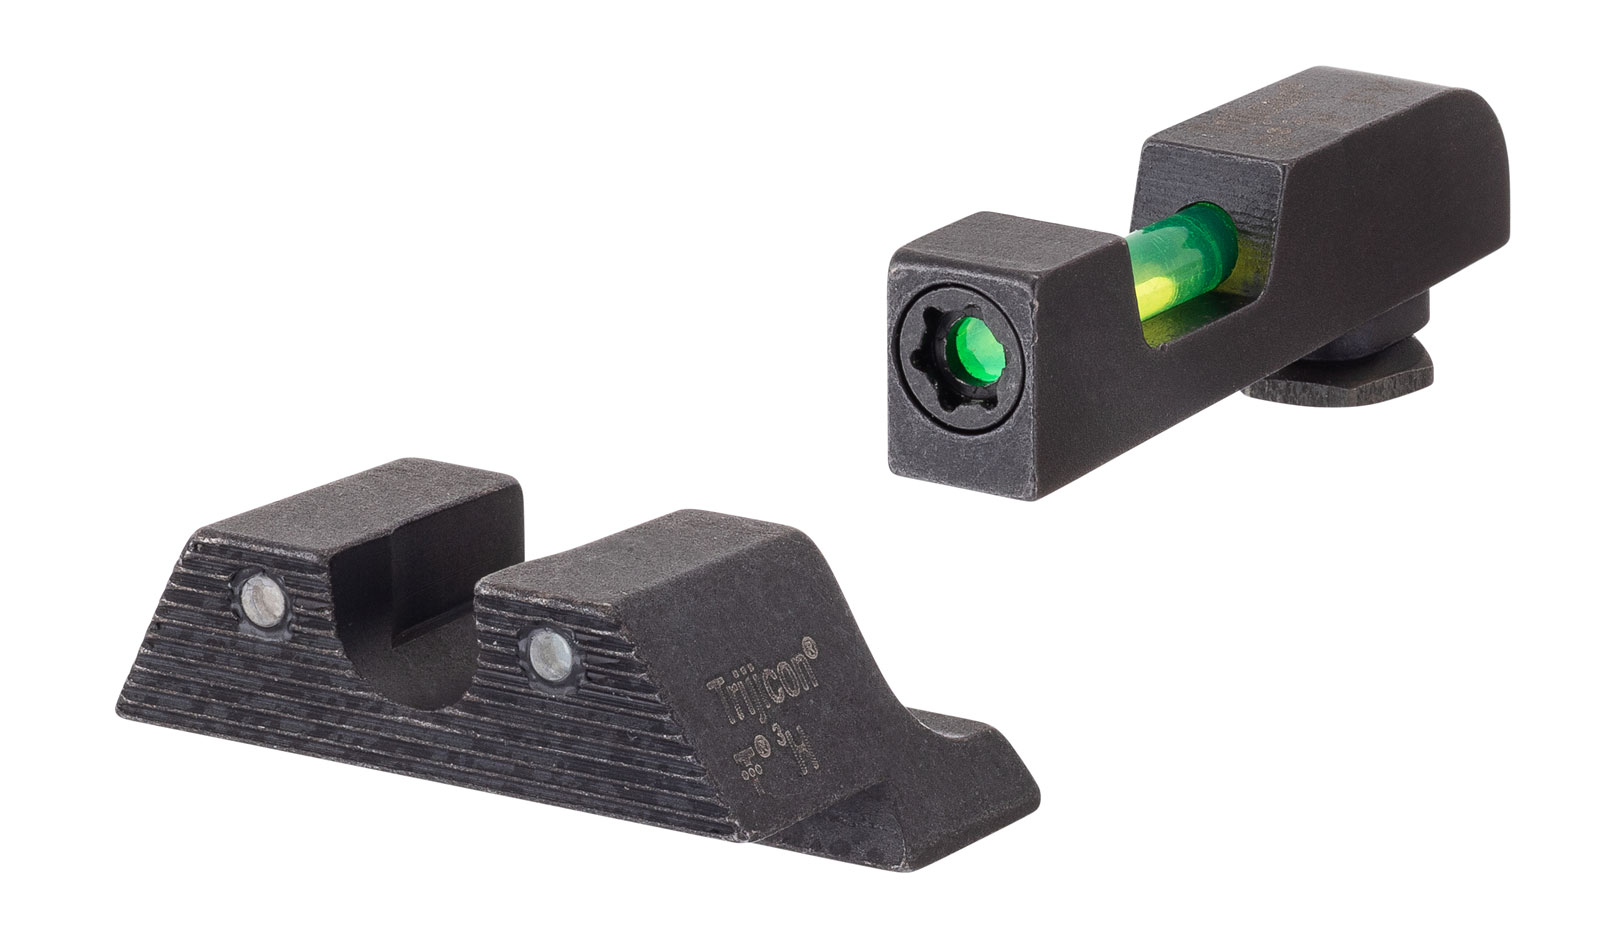 Trijicon DI™ Night Sights